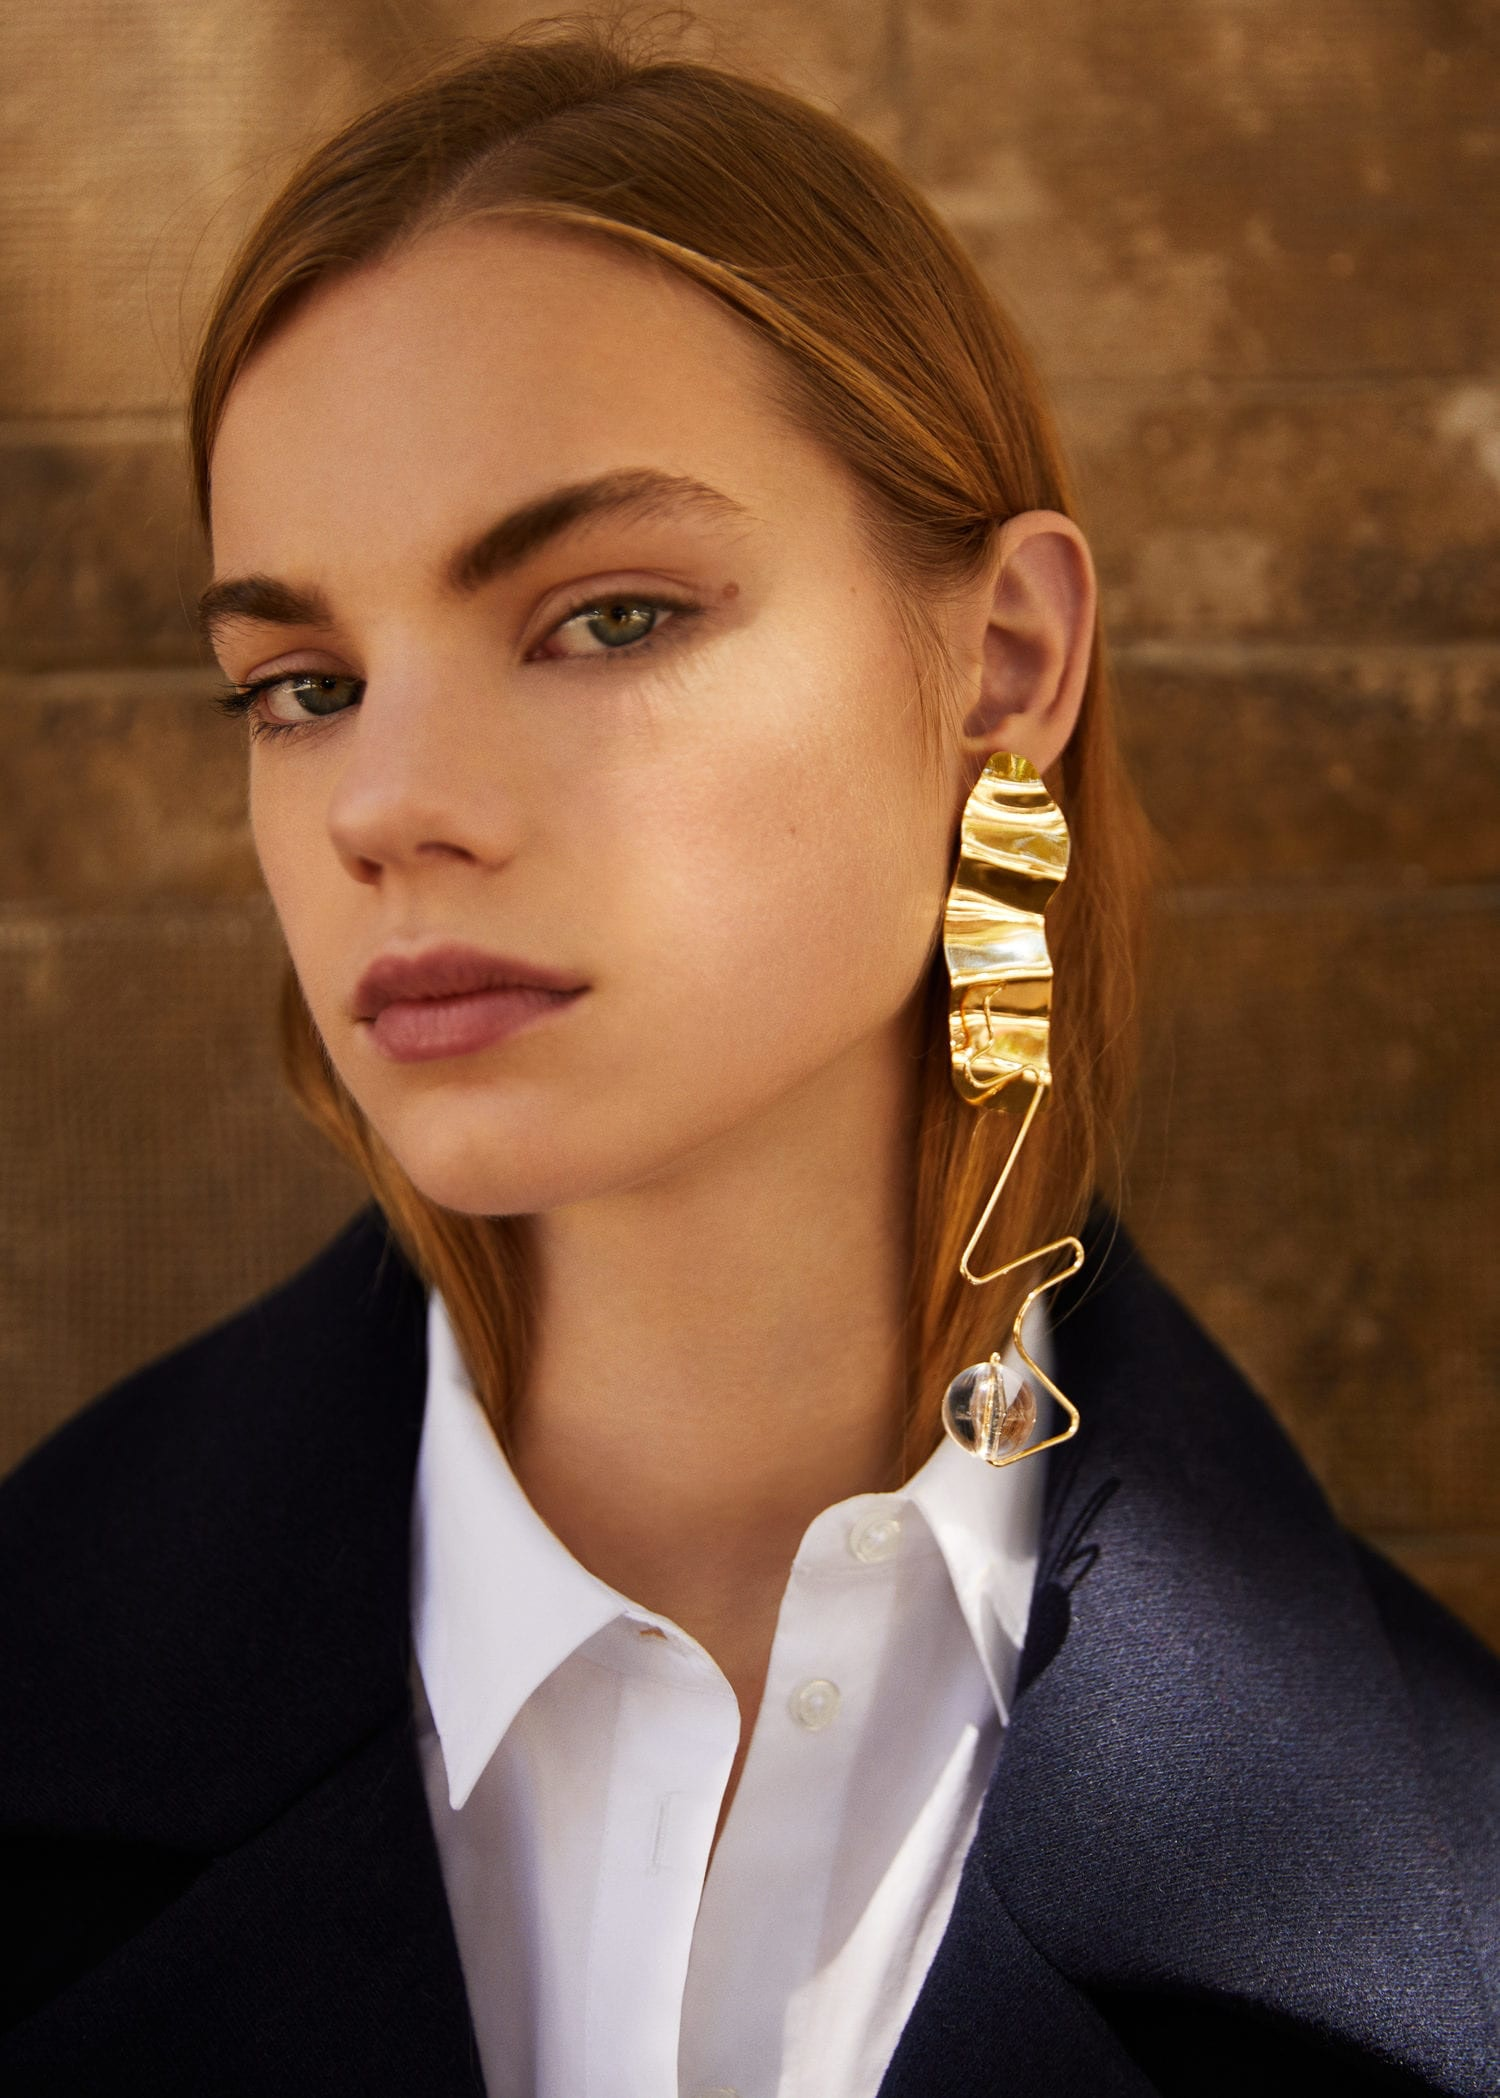 db2b685ea 2018 Jewelry Trends Predict Statement Earrings Are Going To Be Huge ...Literally